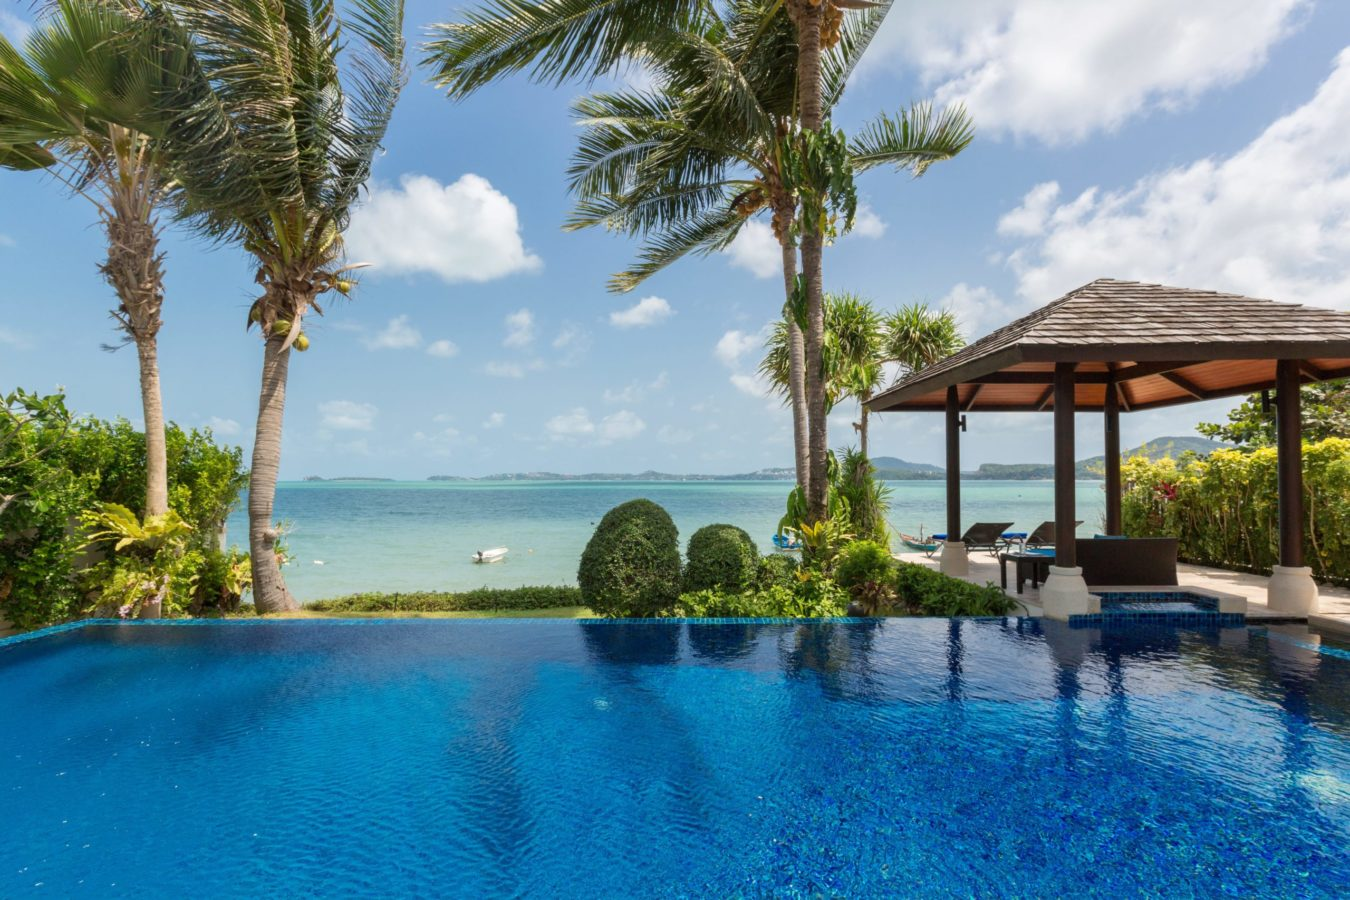 LSA Curates: Baan Leelawadee lets you go from villa to beach in just a few steps